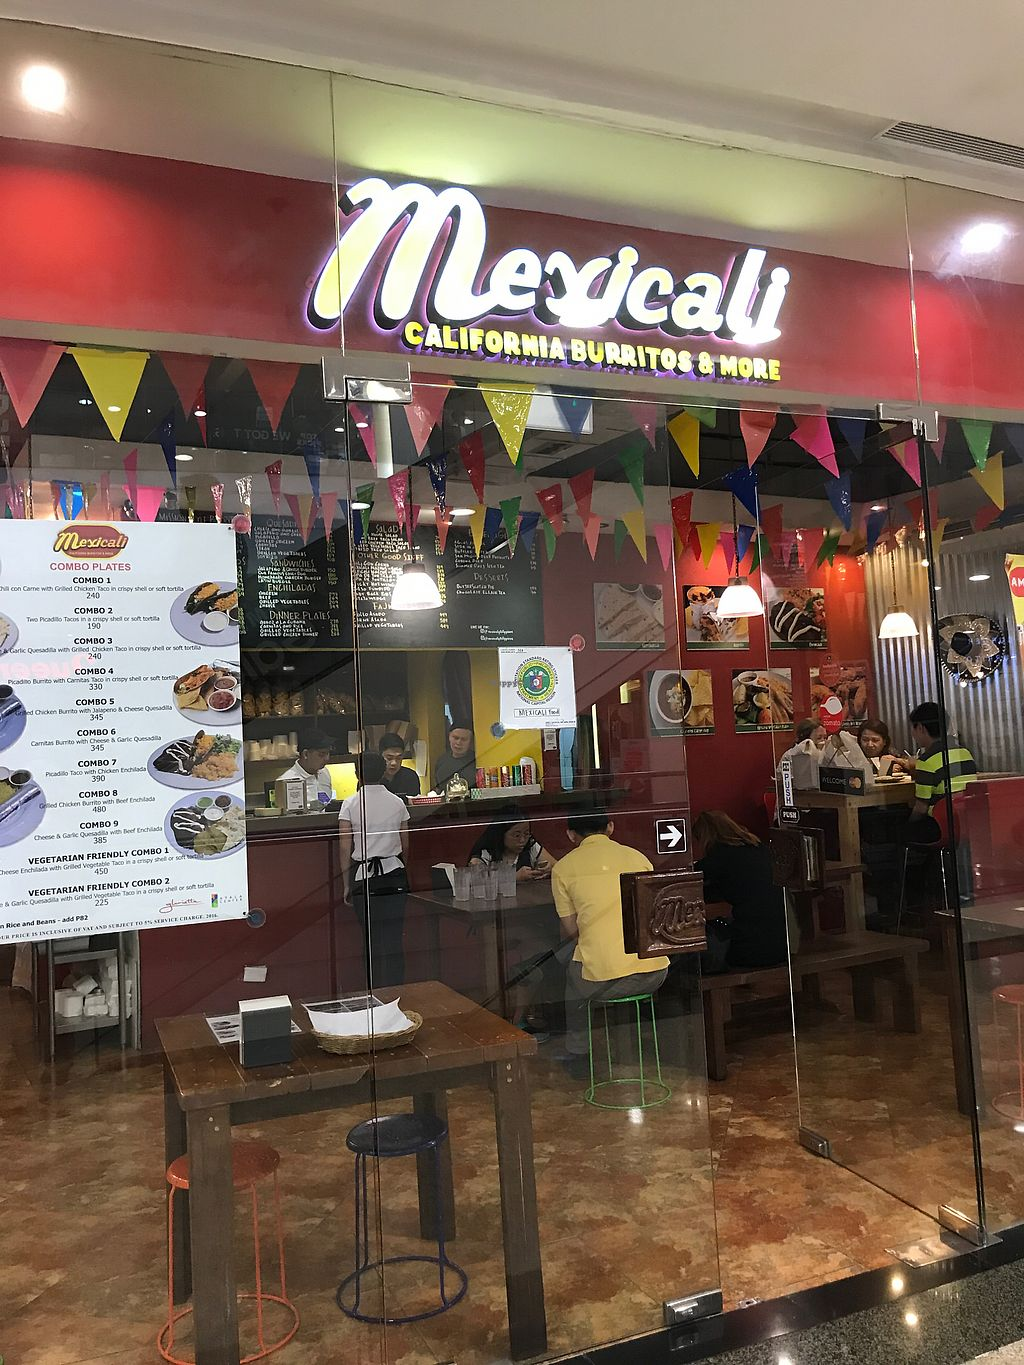 """Photo of Mexicali  by <a href=""""/members/profile/chayong"""">chayong</a> <br/>maxicali <br/> August 16, 2017  - <a href='/contact/abuse/image/98675/293258'>Report</a>"""